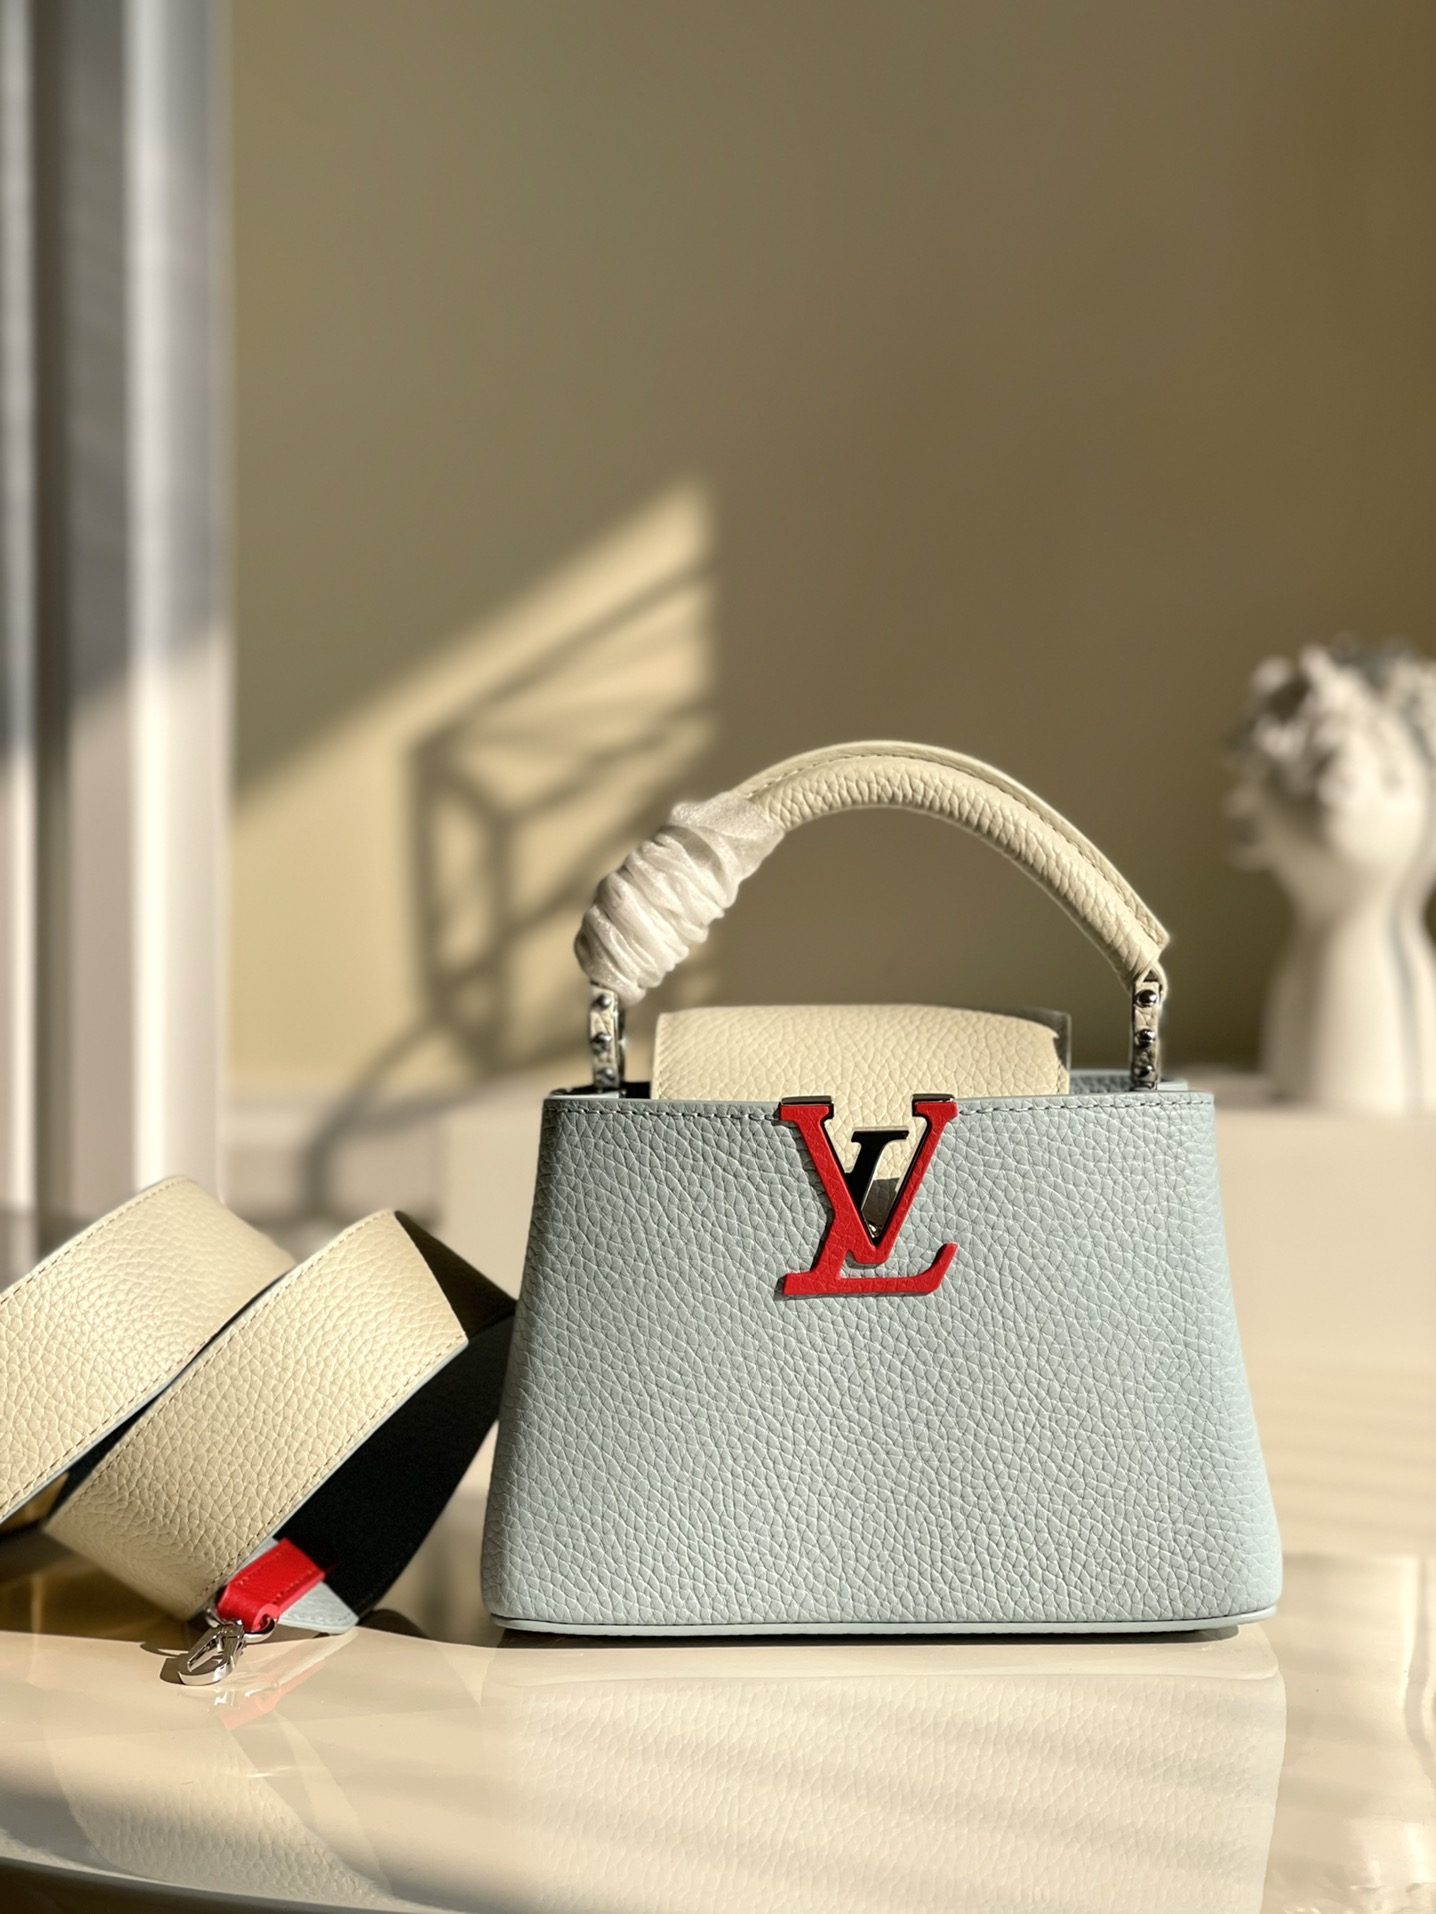 Replica Louis Vuitton M57519 Capucines Mini Handbag Olympe Blue Red White Taurillon Leather